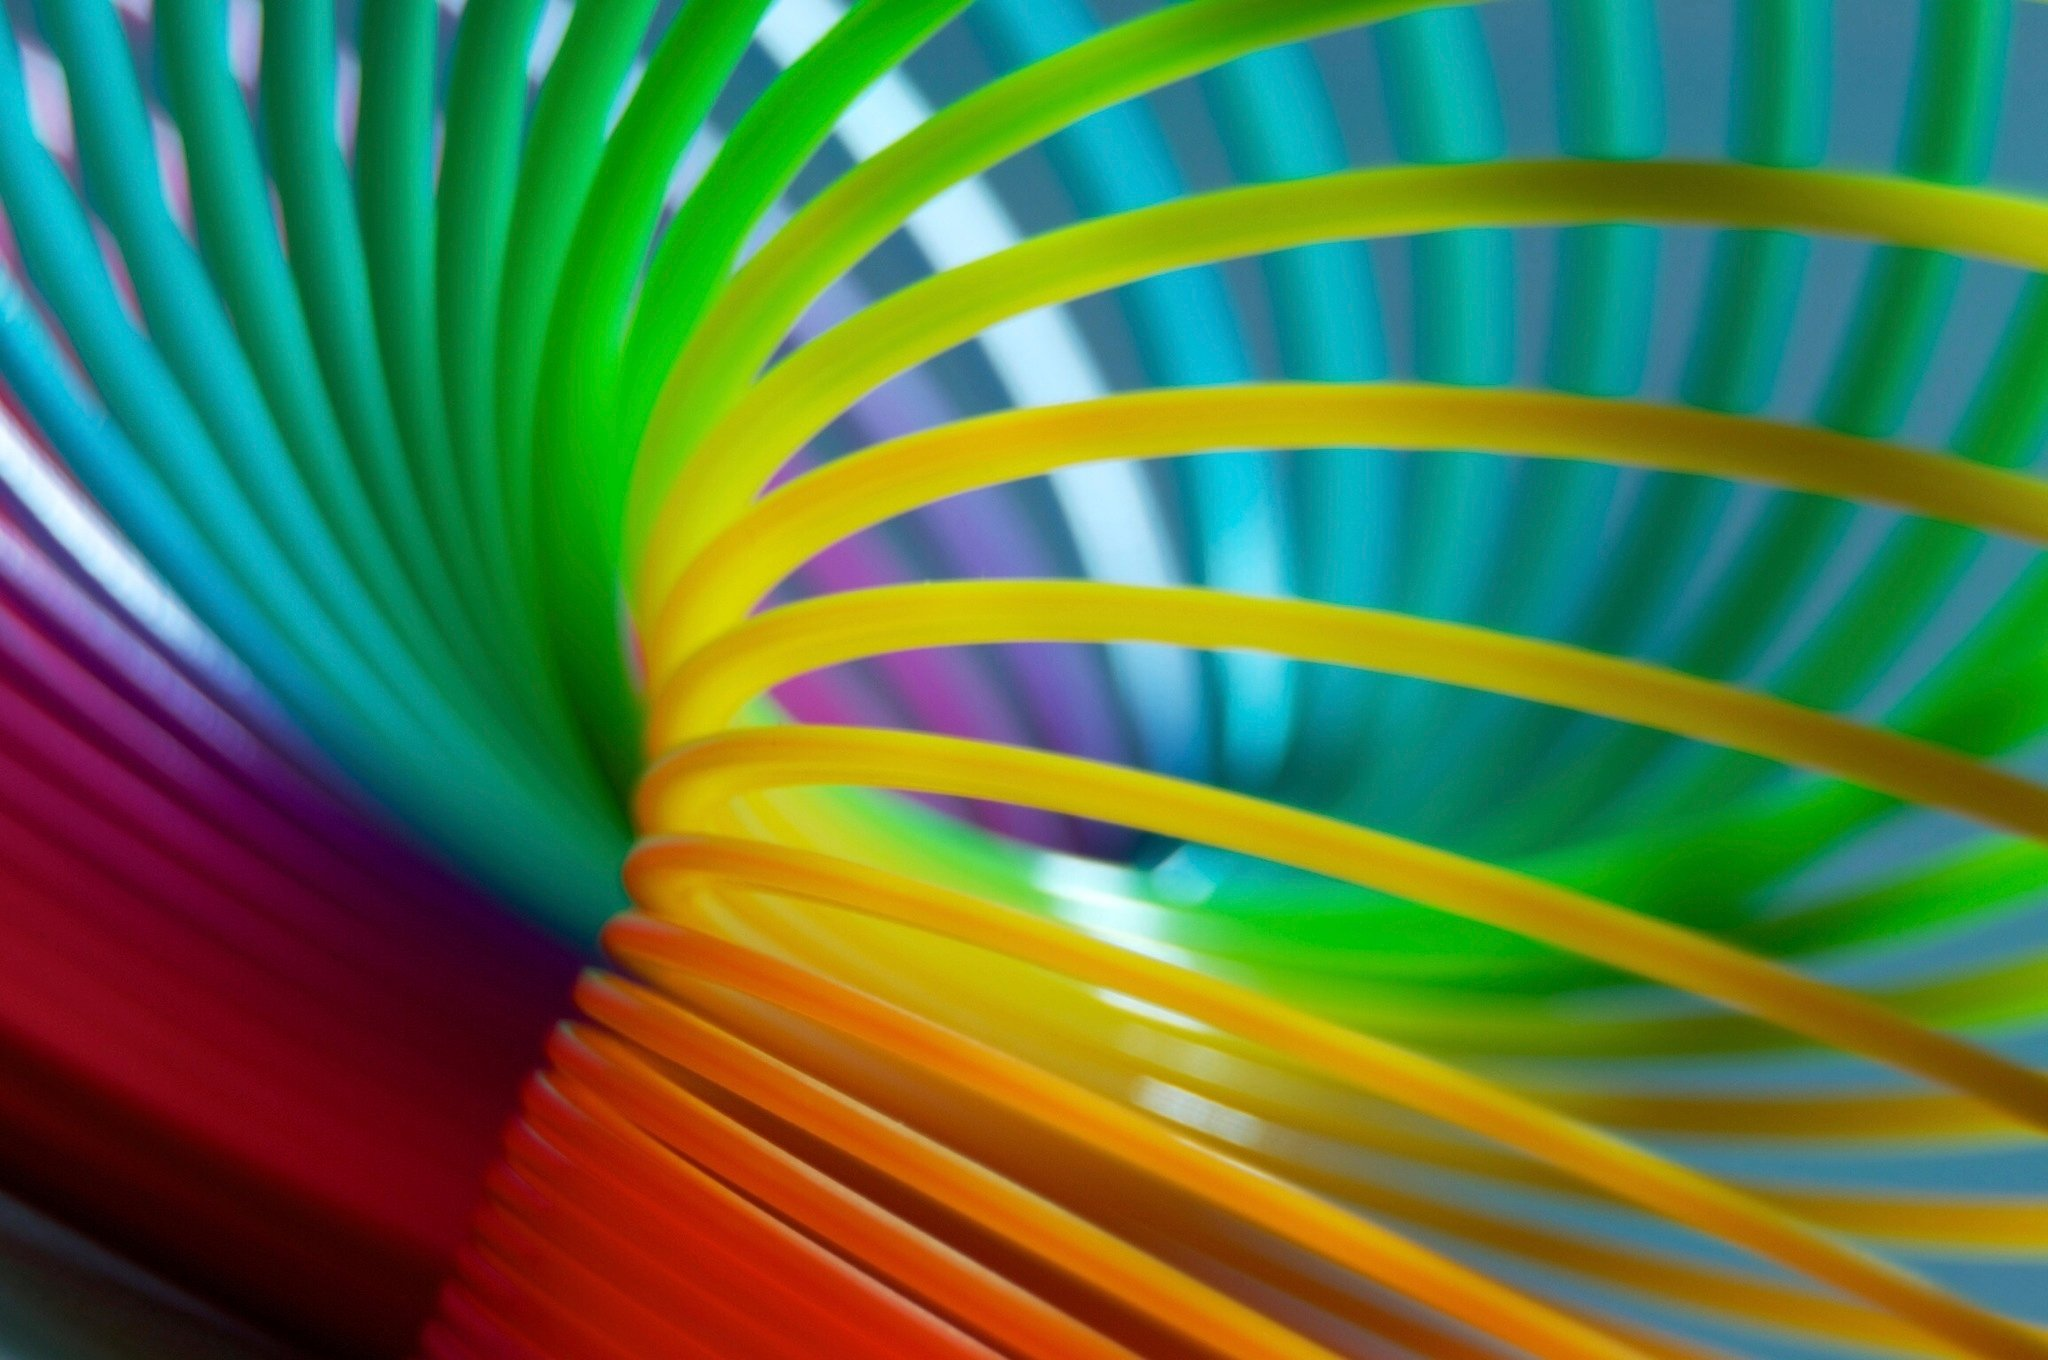 slinky-elastic-flexible-colorful